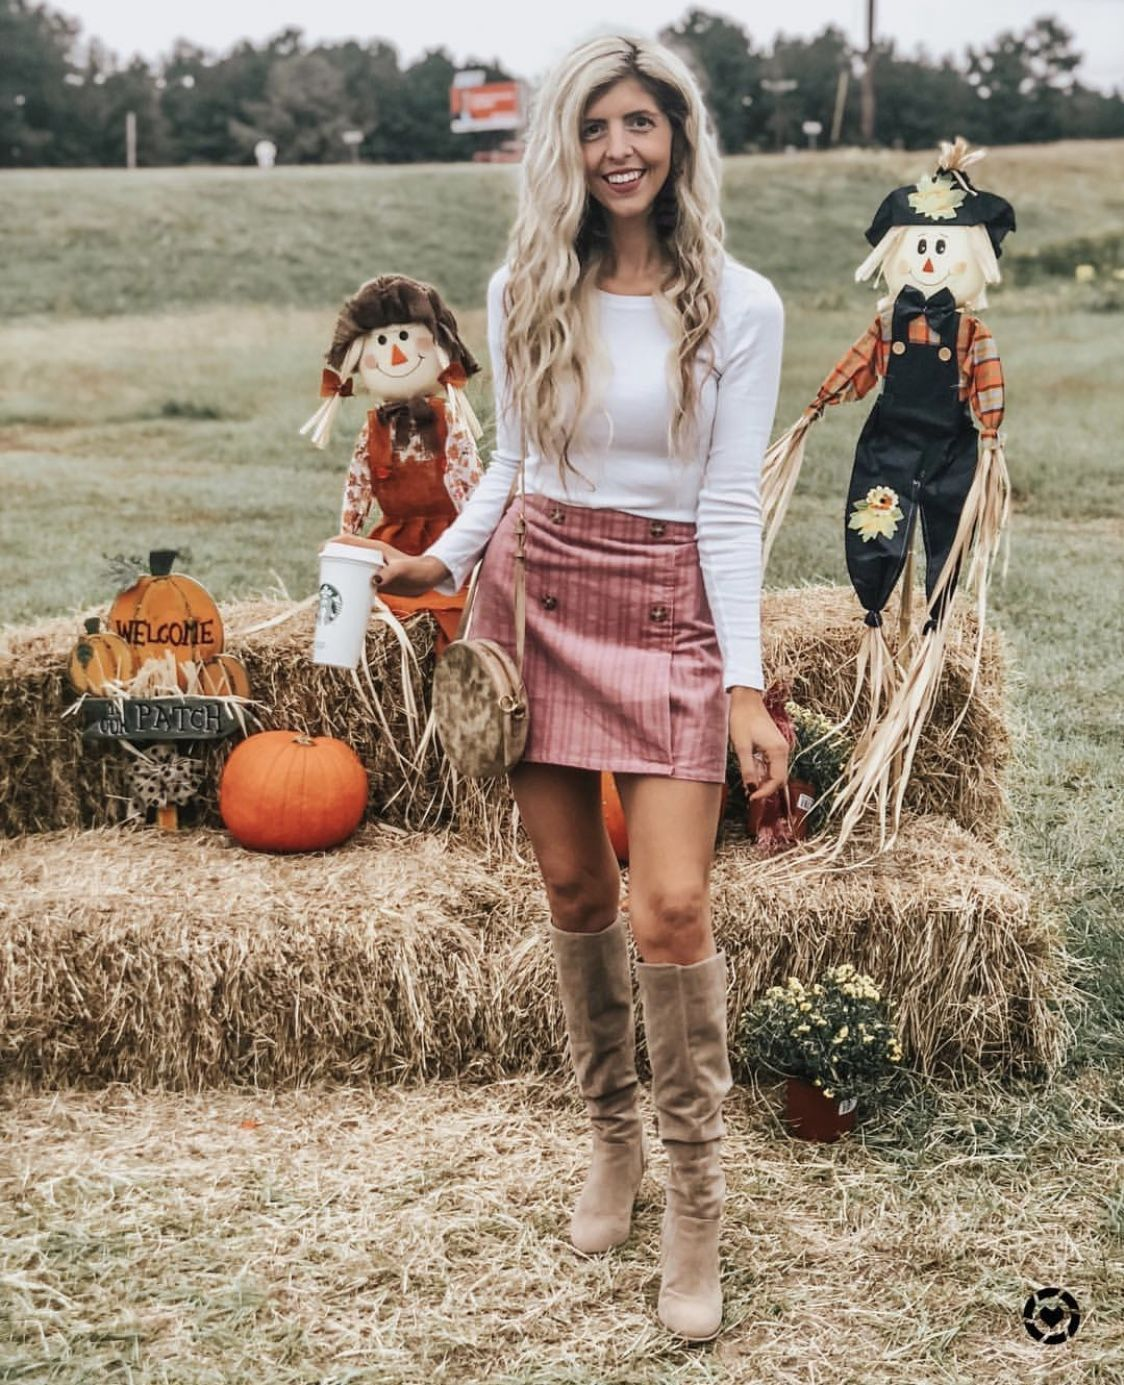 Fashion Blogger, Women's Fashion, Louisiana Blogger, Meaganfetchhappen, Fashion Blogger, Lifestyle Blogger, Instagram Picture Ideas, Affordable Fashion, Blonde Curly Hair, Self Tanner, Tall Fashion, Knee High Boots, Pumpkin Patch Outfit, Fall Outfit #pumpkinpatchoutfitwomen Fashion Blogger, Women's Fashion, Louisiana Blogger, Meaganfetchhappen, Fashion Blogger, Lifestyle Blogger, Instagram Picture Ideas, Affordable Fashion, Blonde Curly Hair, Self Tanner, Tall Fashion, Knee High Boots, Pumpk #pumpkinpatchoutfitwomen